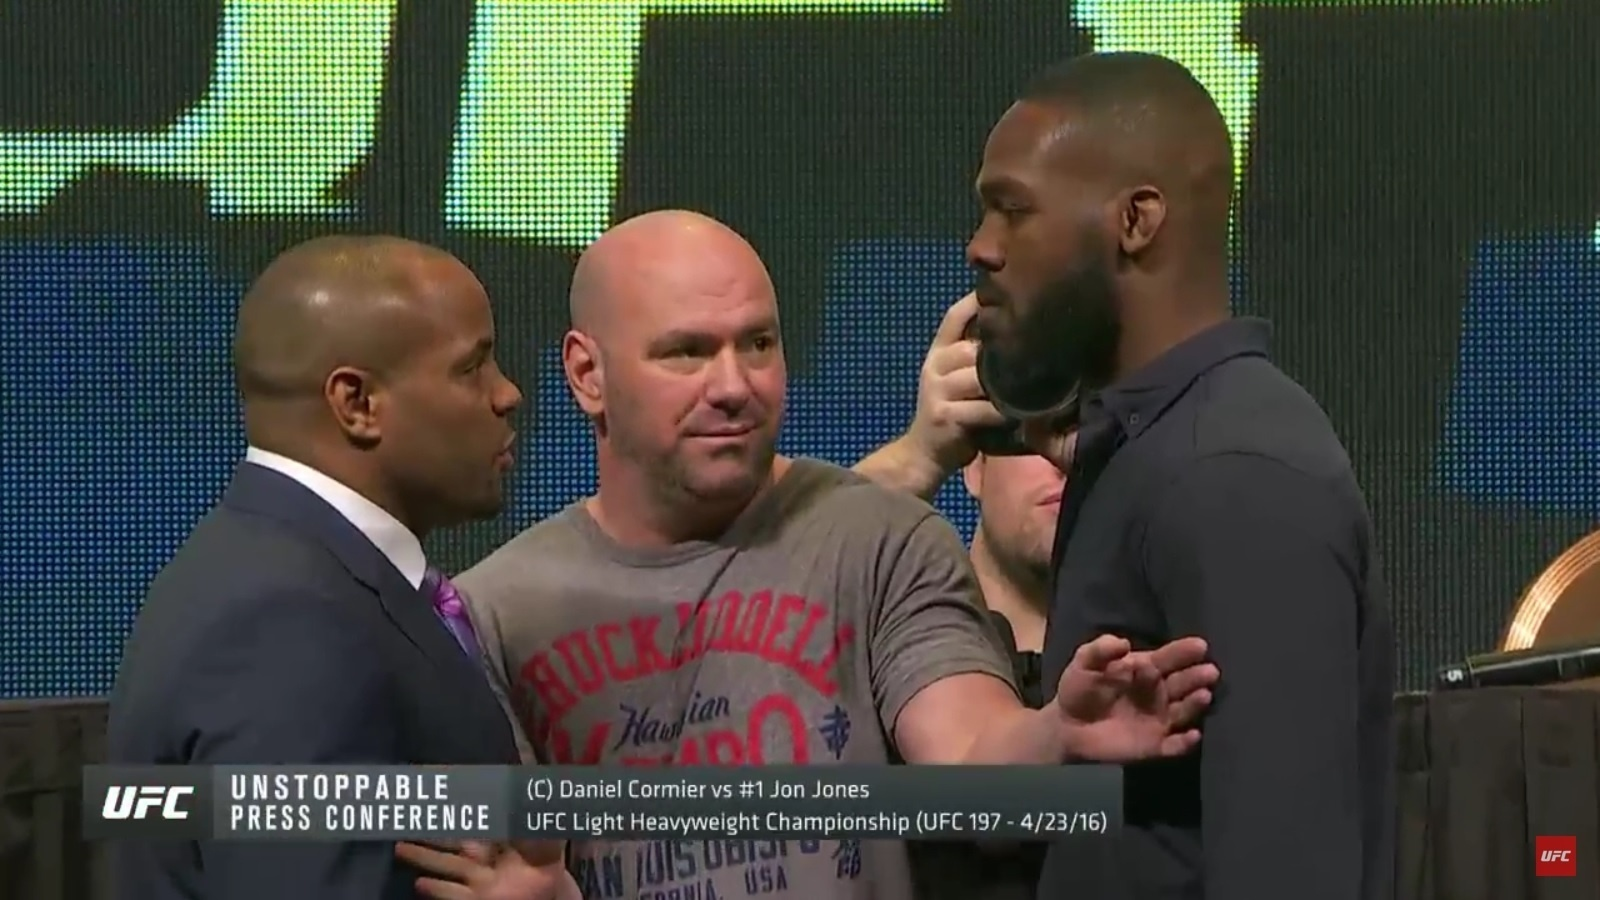 Daniel Cormier e Jon Jones se encaram durante evento do UFC